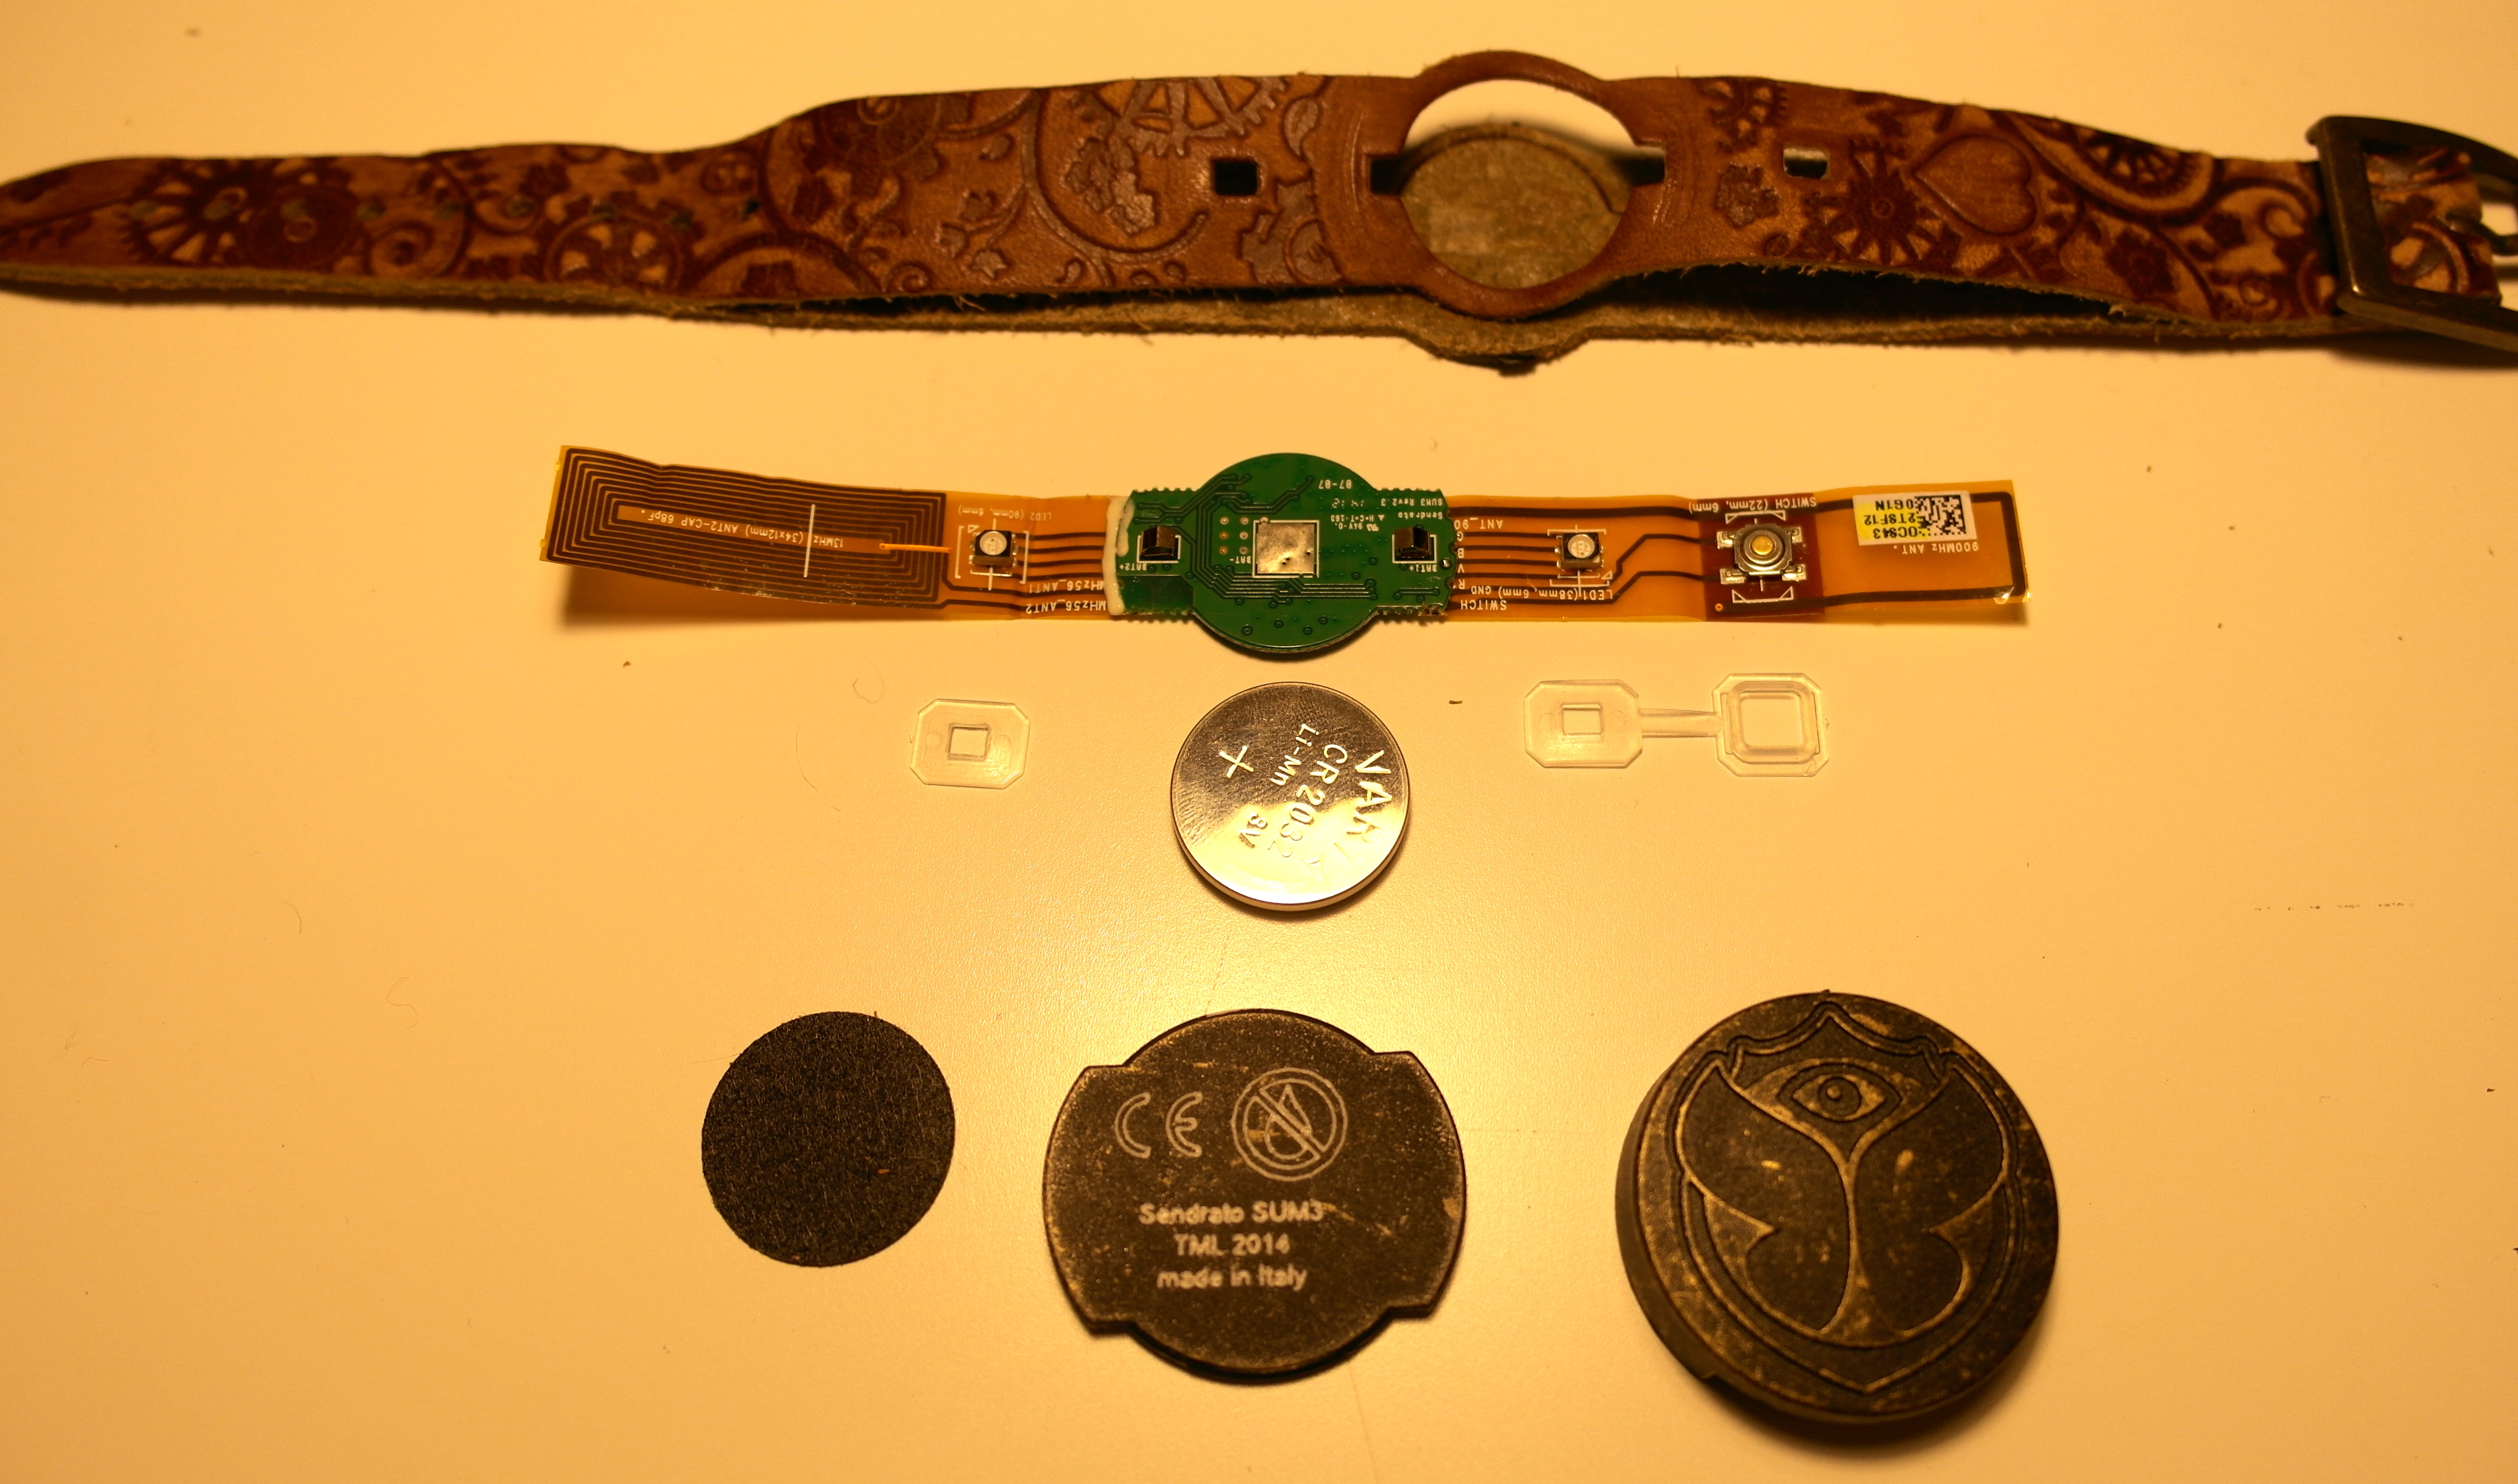 2014-11-17-TML-bracelet-teardown-5